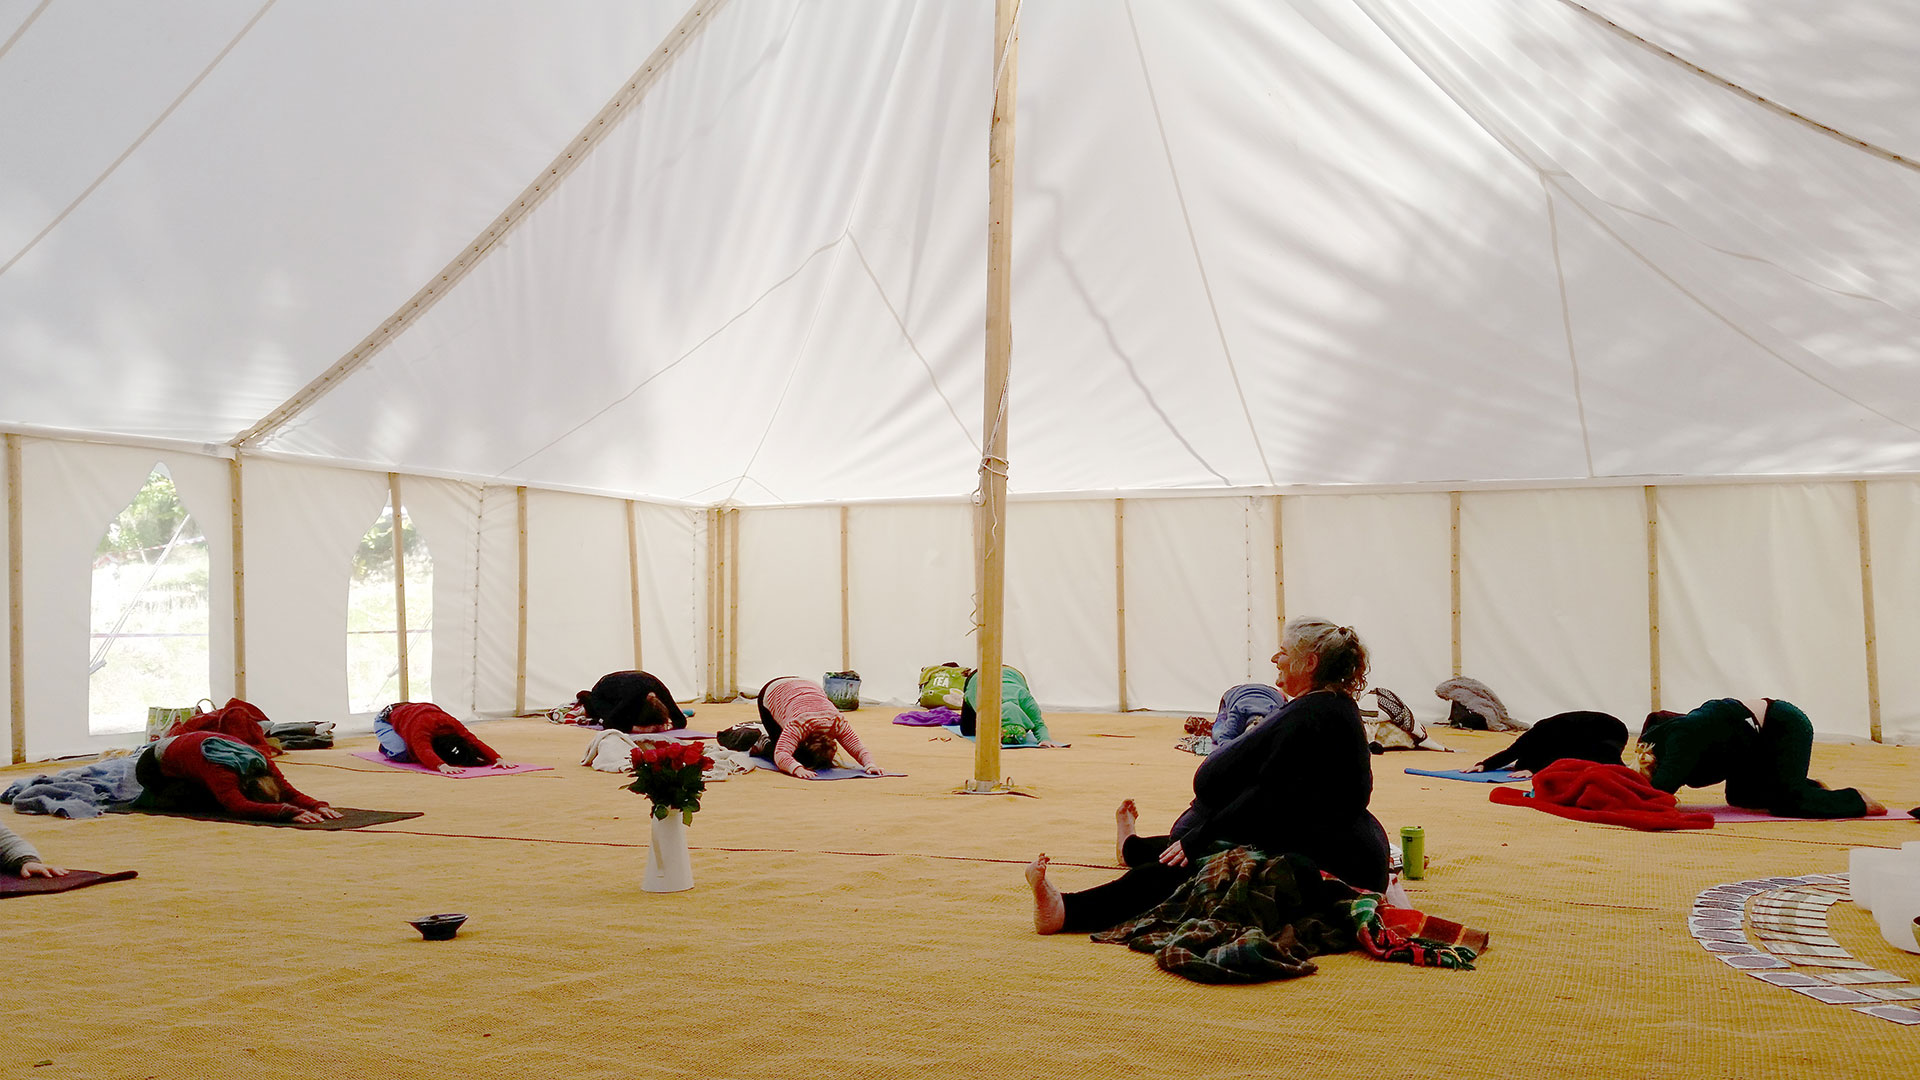 More yoga in in the marquee